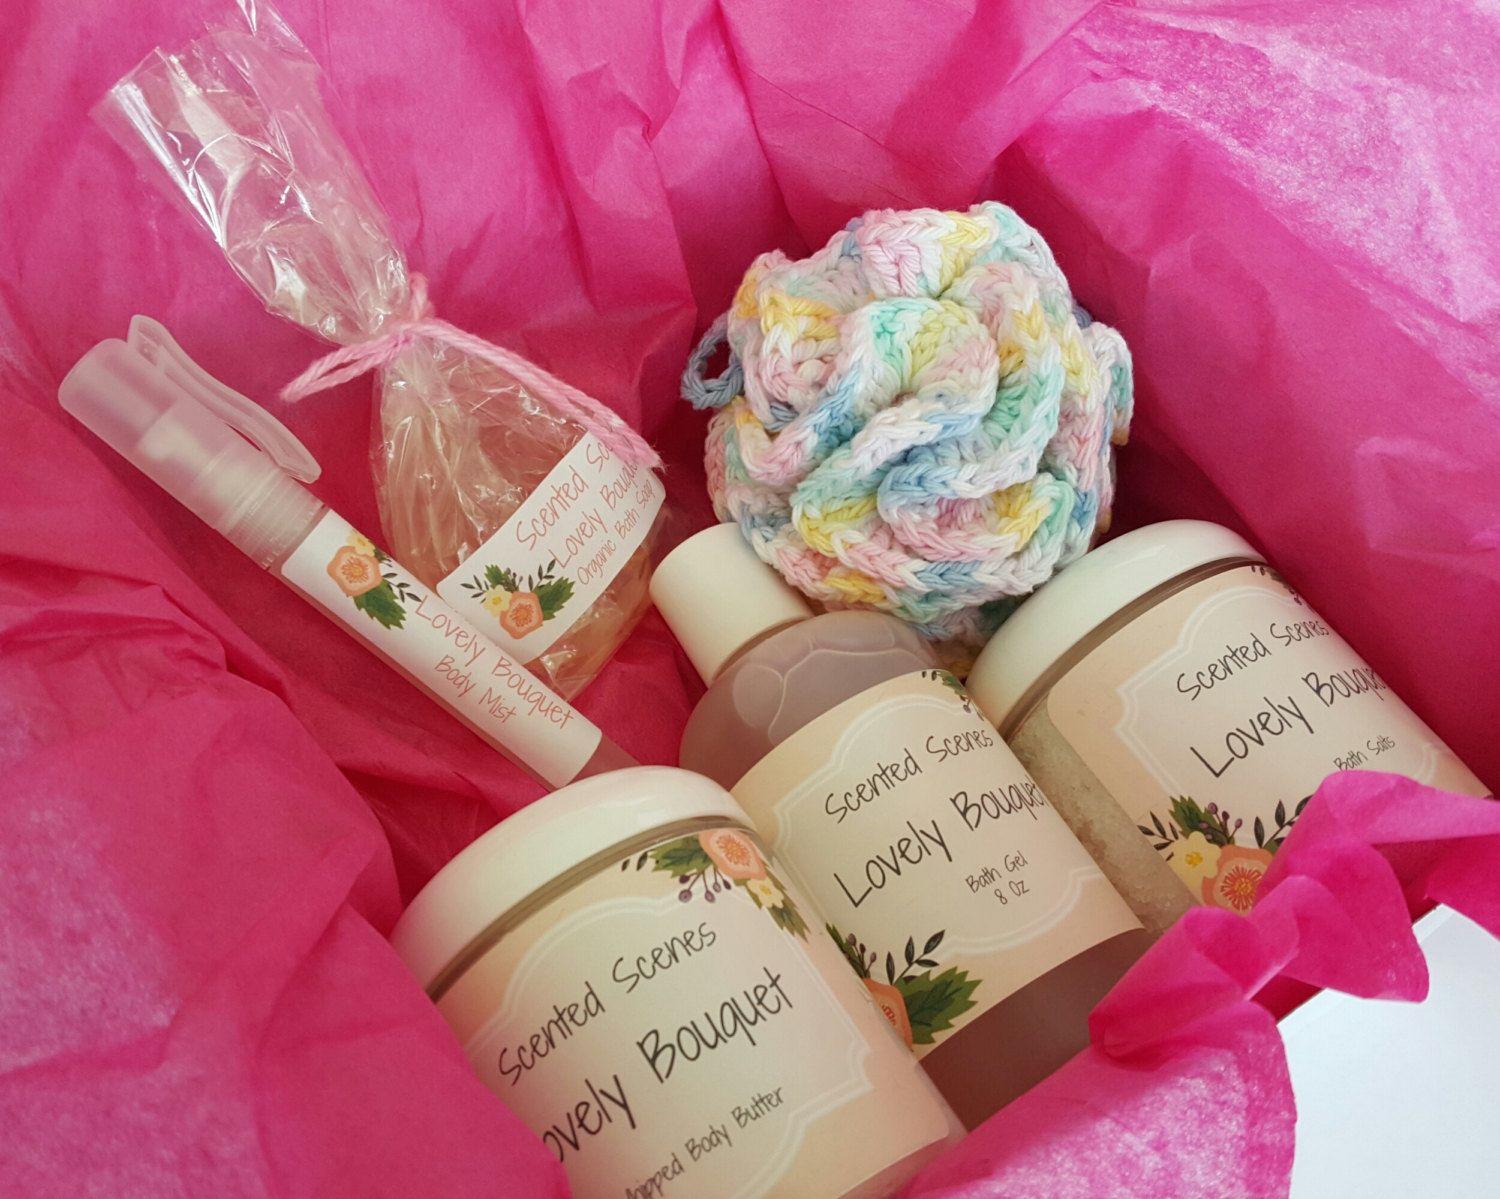 Bath gift box organic spa beauty gift mothers day gift idea bath gift box organic spa beauty gift mothers day gift idea easter gift negle Image collections